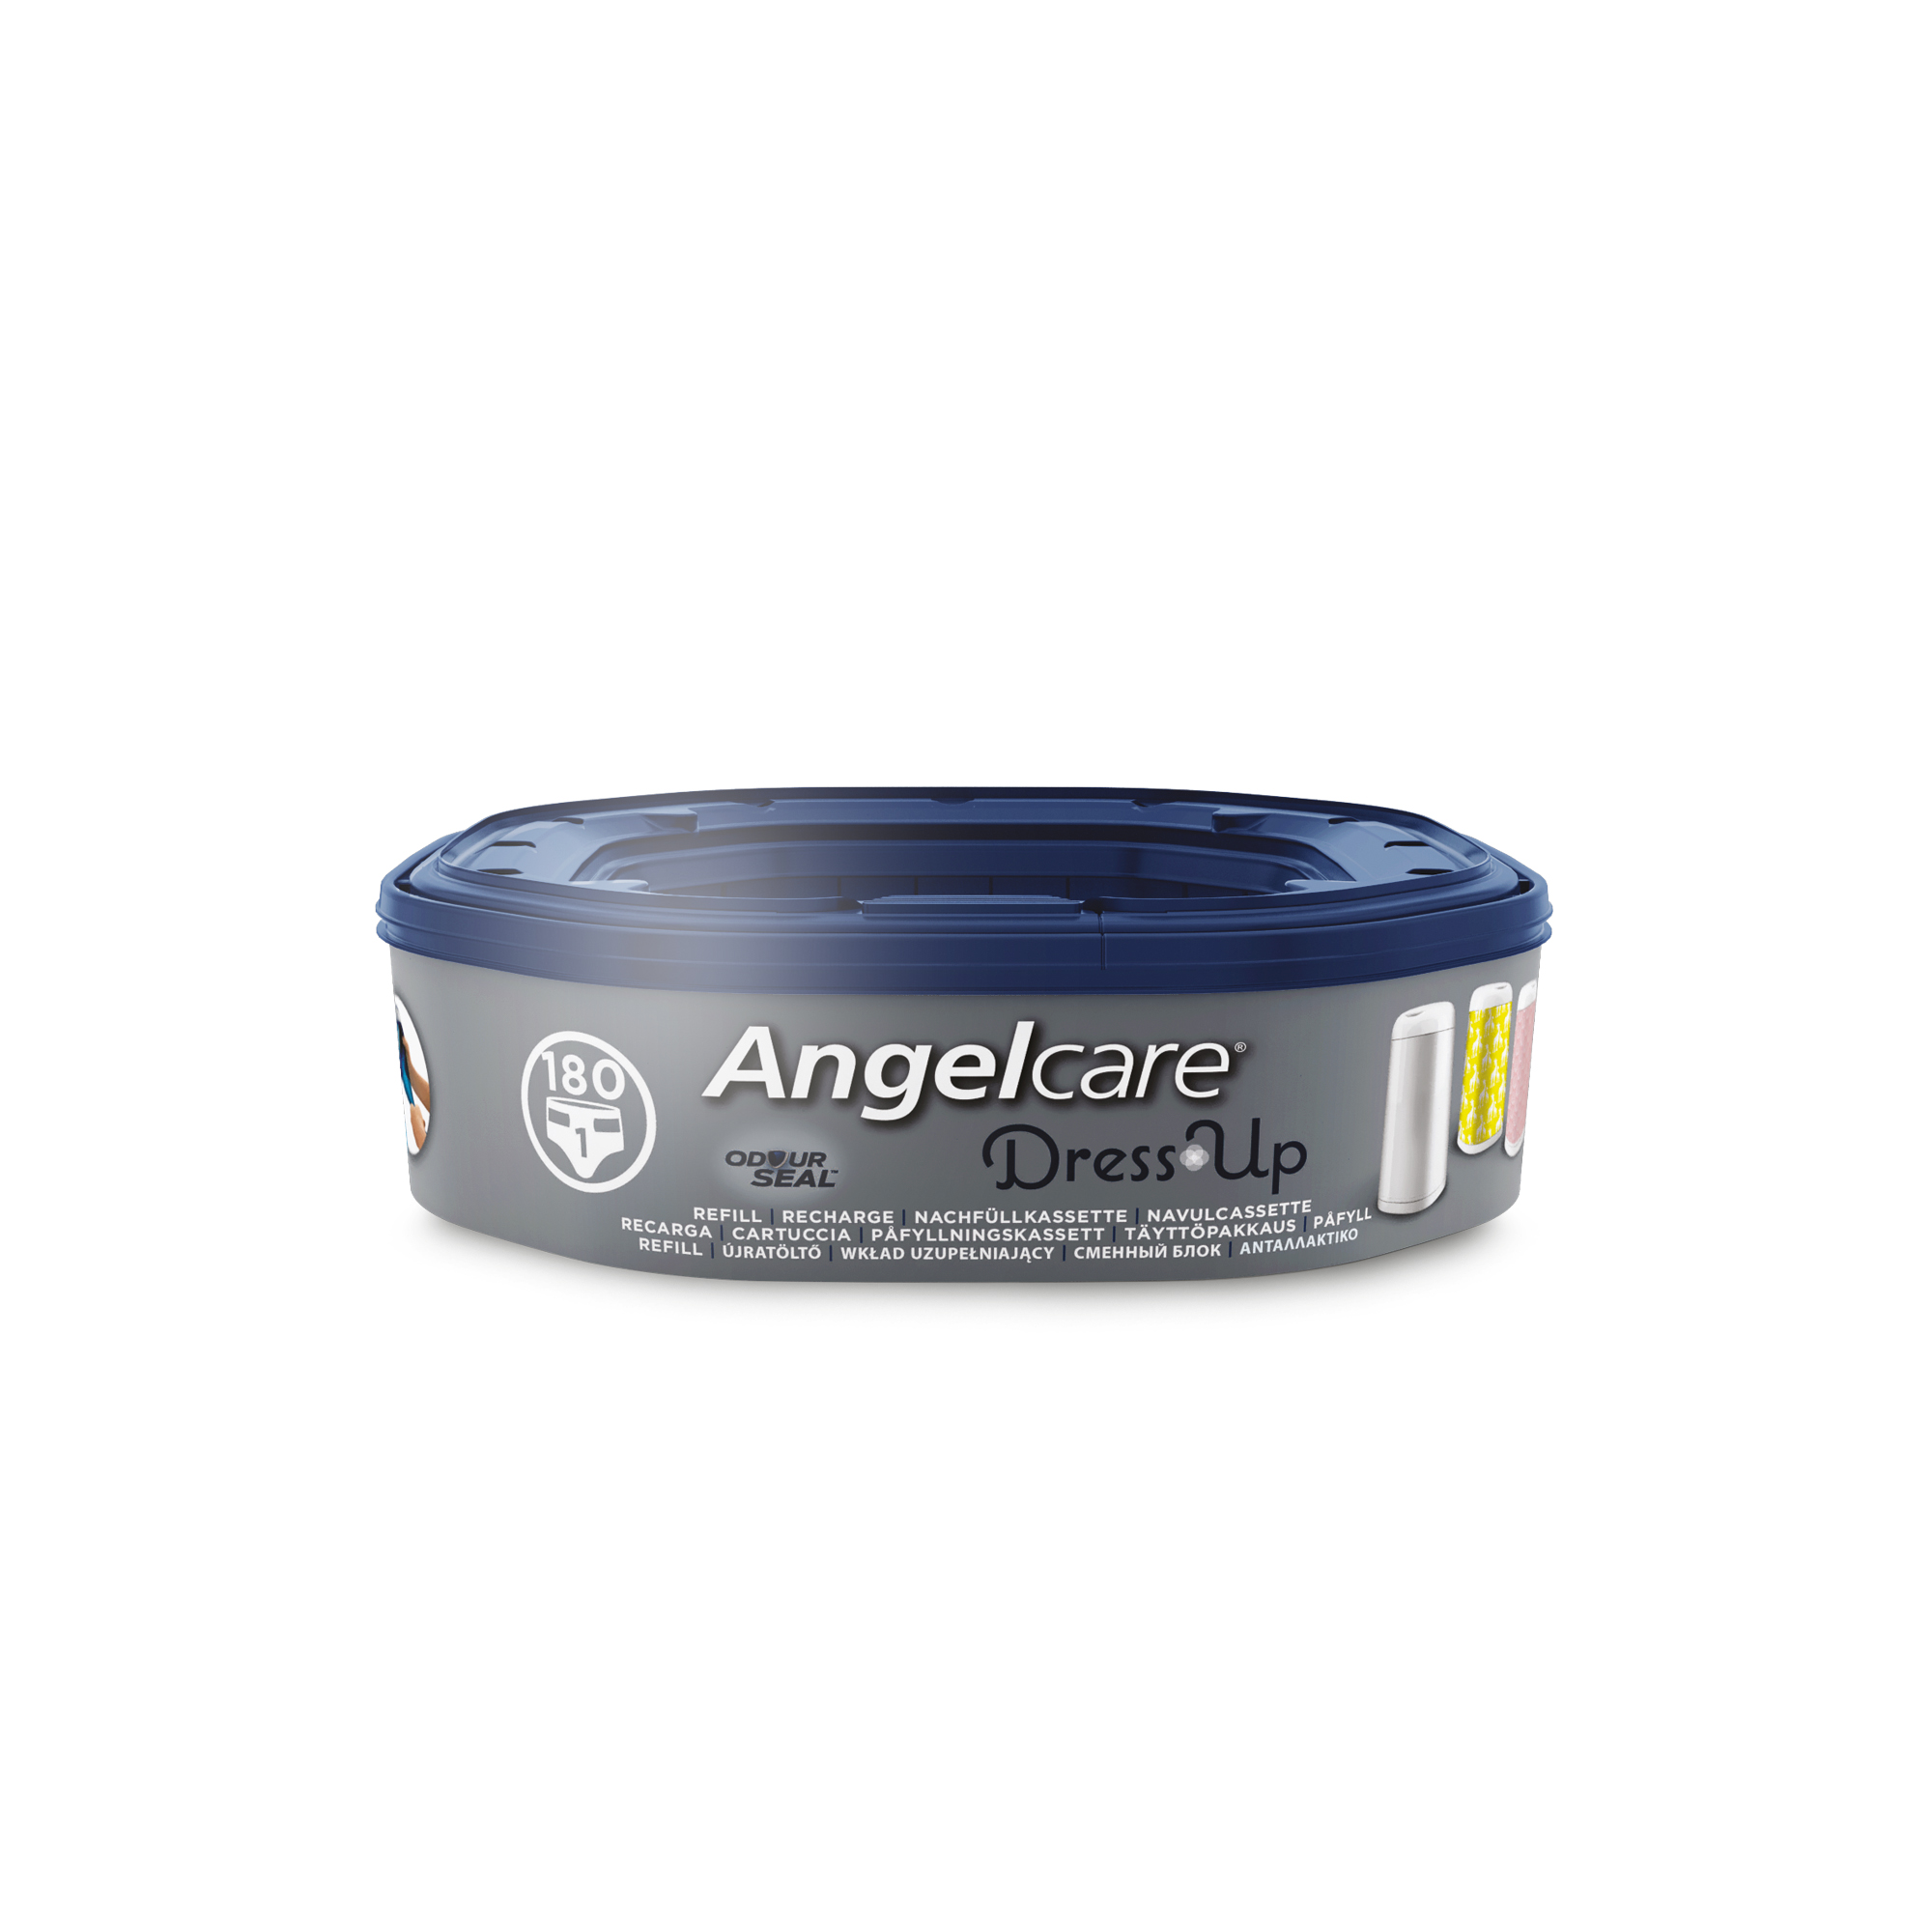 Angelcare 1 recharge octogonale pour poubelle Dress Up